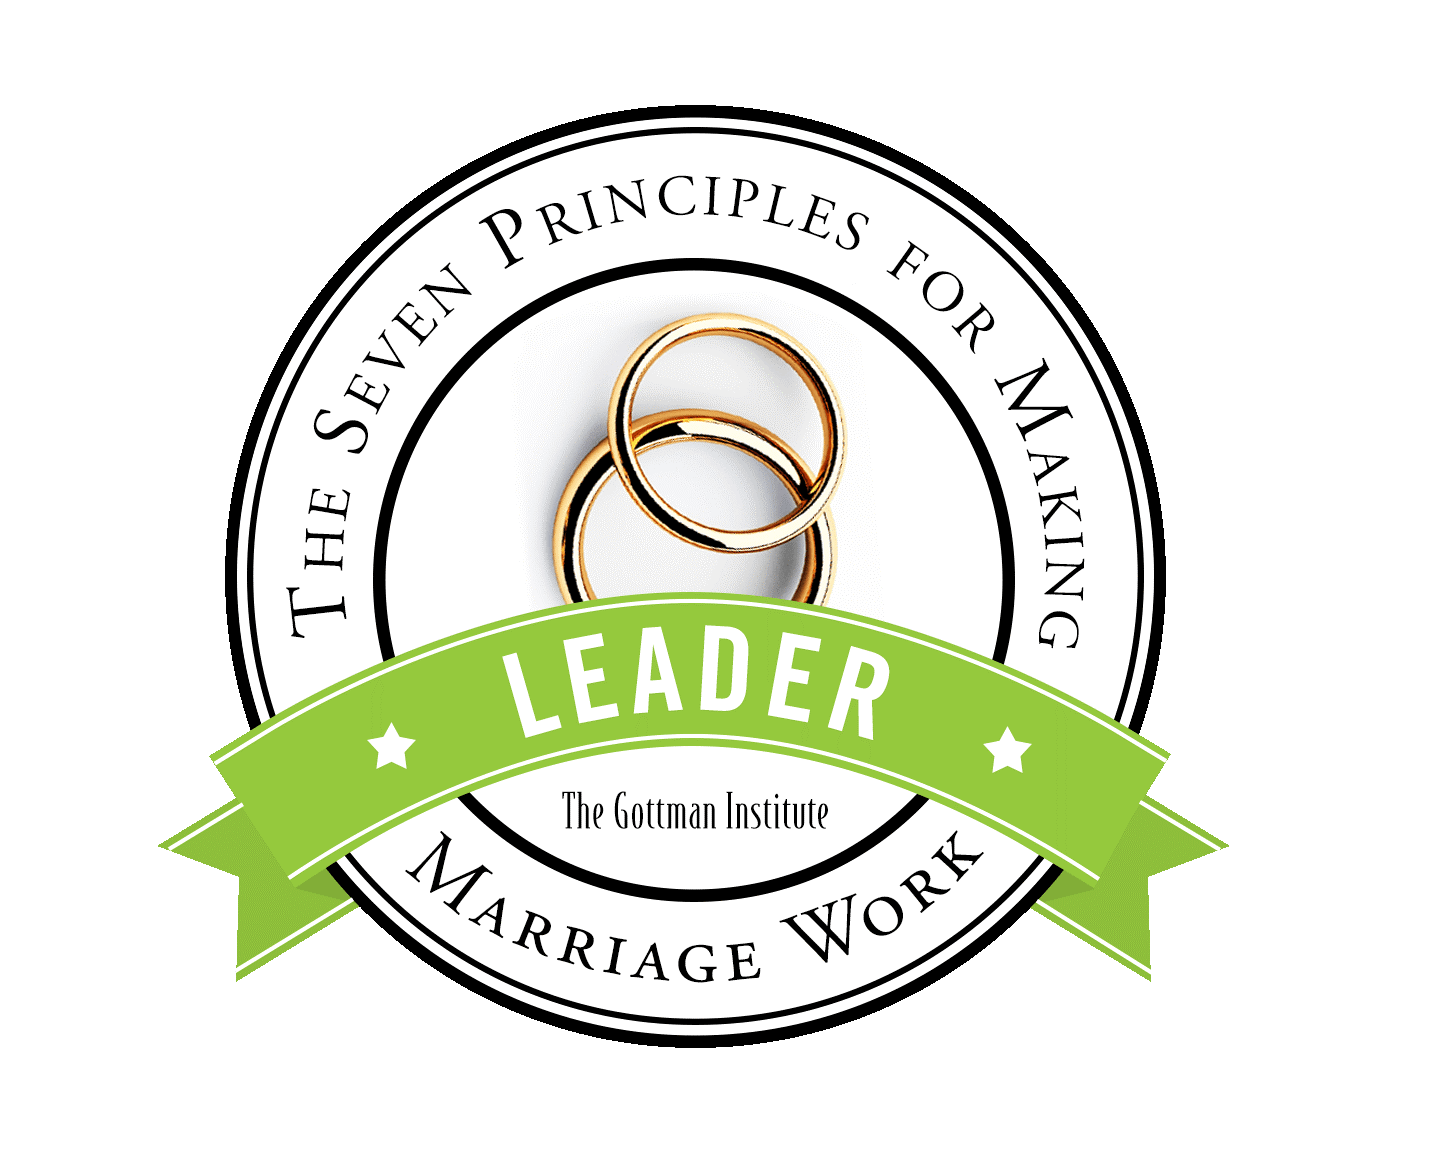 - I am Level 3 trained in Gottman Method Couples Therapy. I have certifications in Couples in Recovery training, as well as in Gottman Infidelity and Trauma training. I am also a Gottman Leader, trained in offering workshops in the Seven Principles for Making Marriage Work.